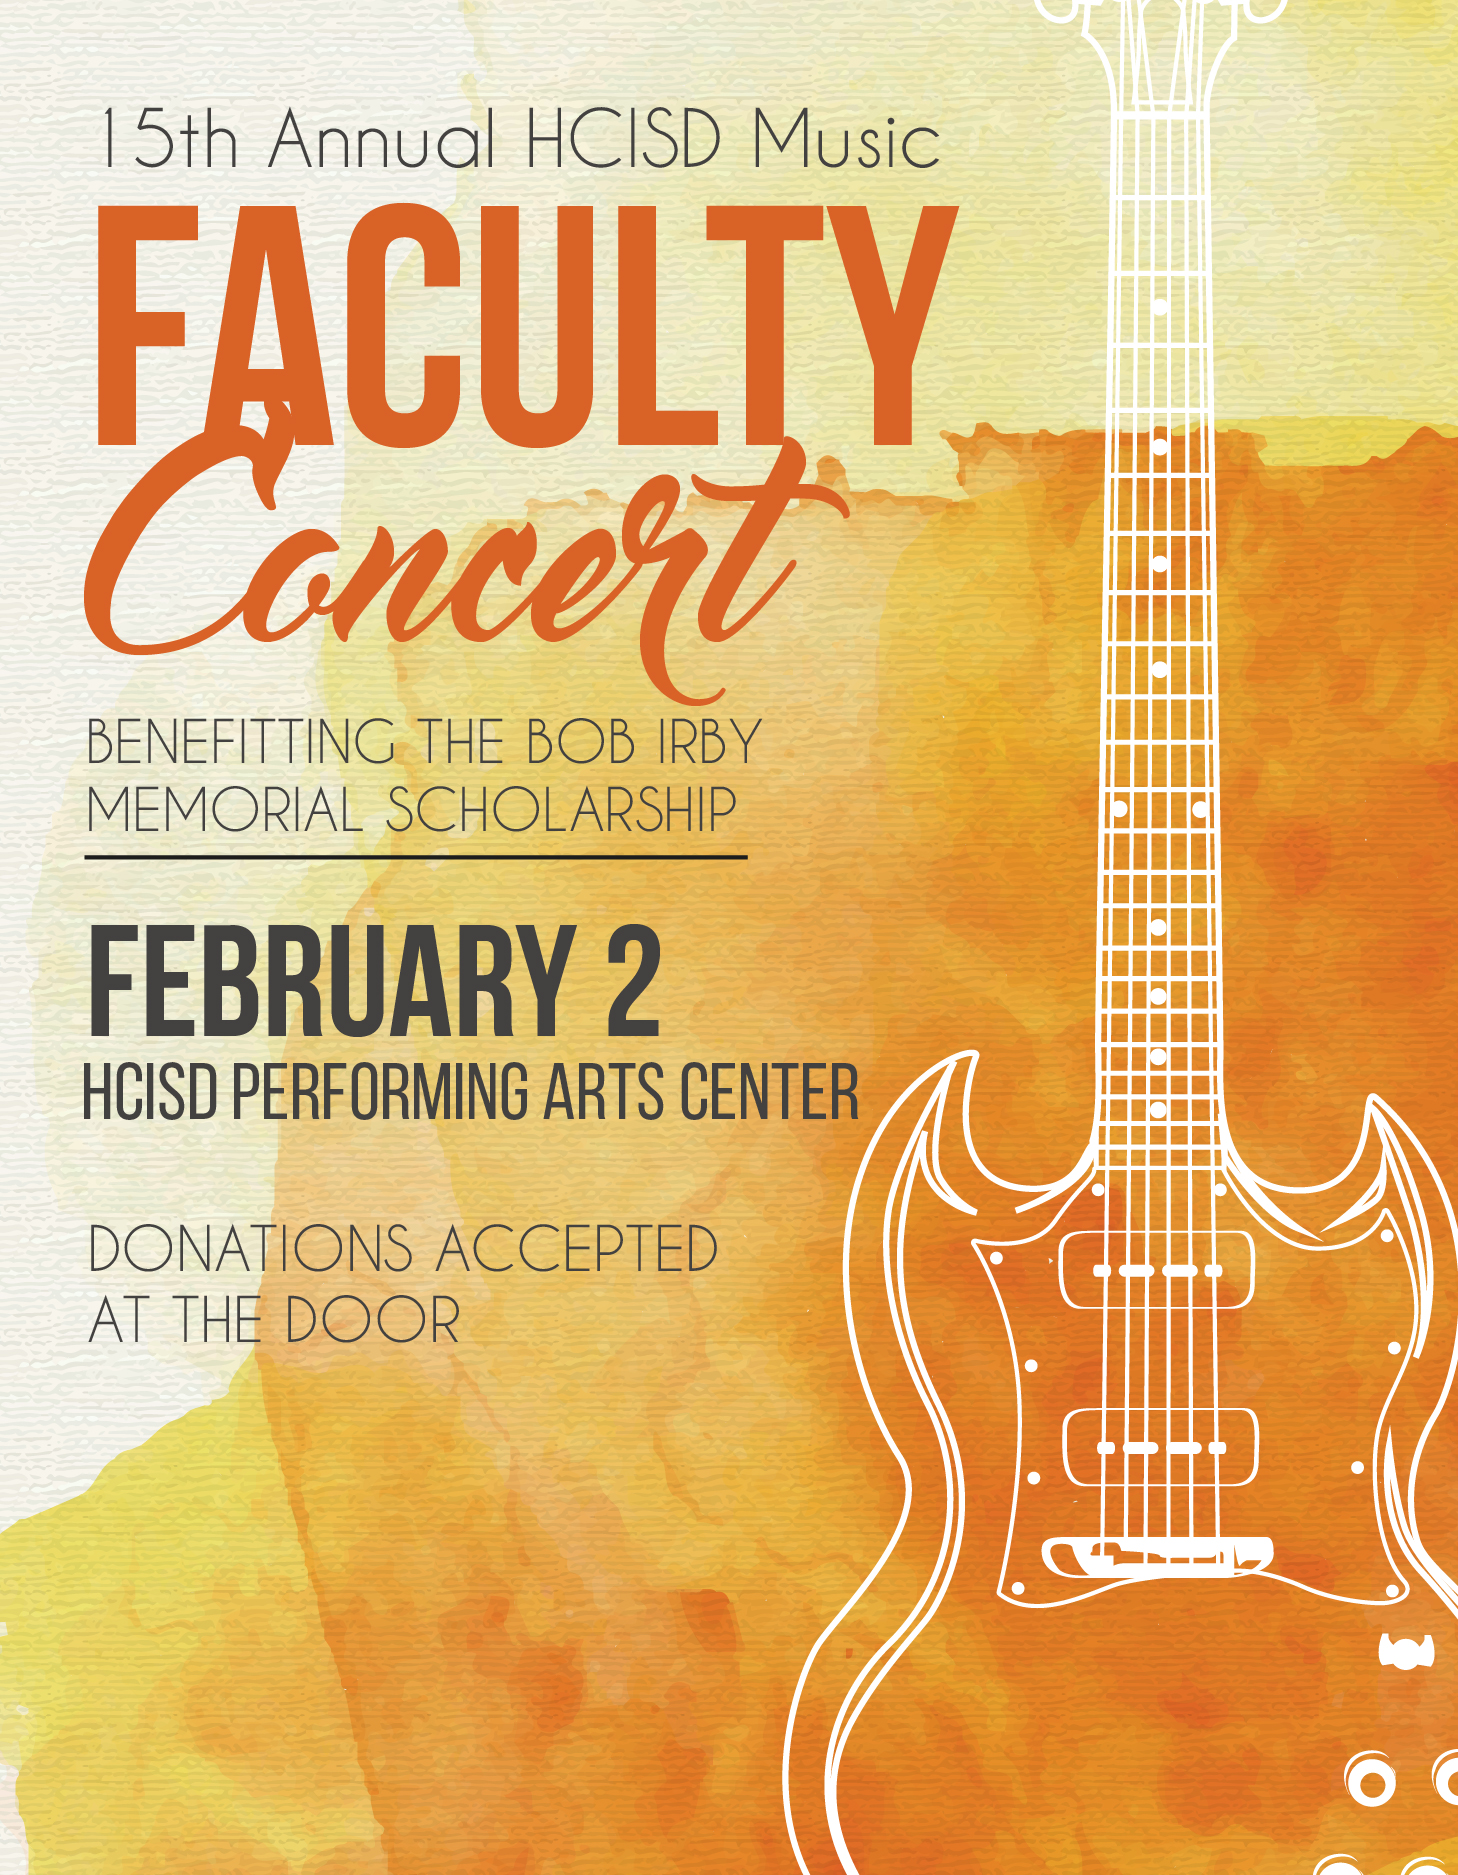 Community invited to attend 15th Annual Faculty Concert